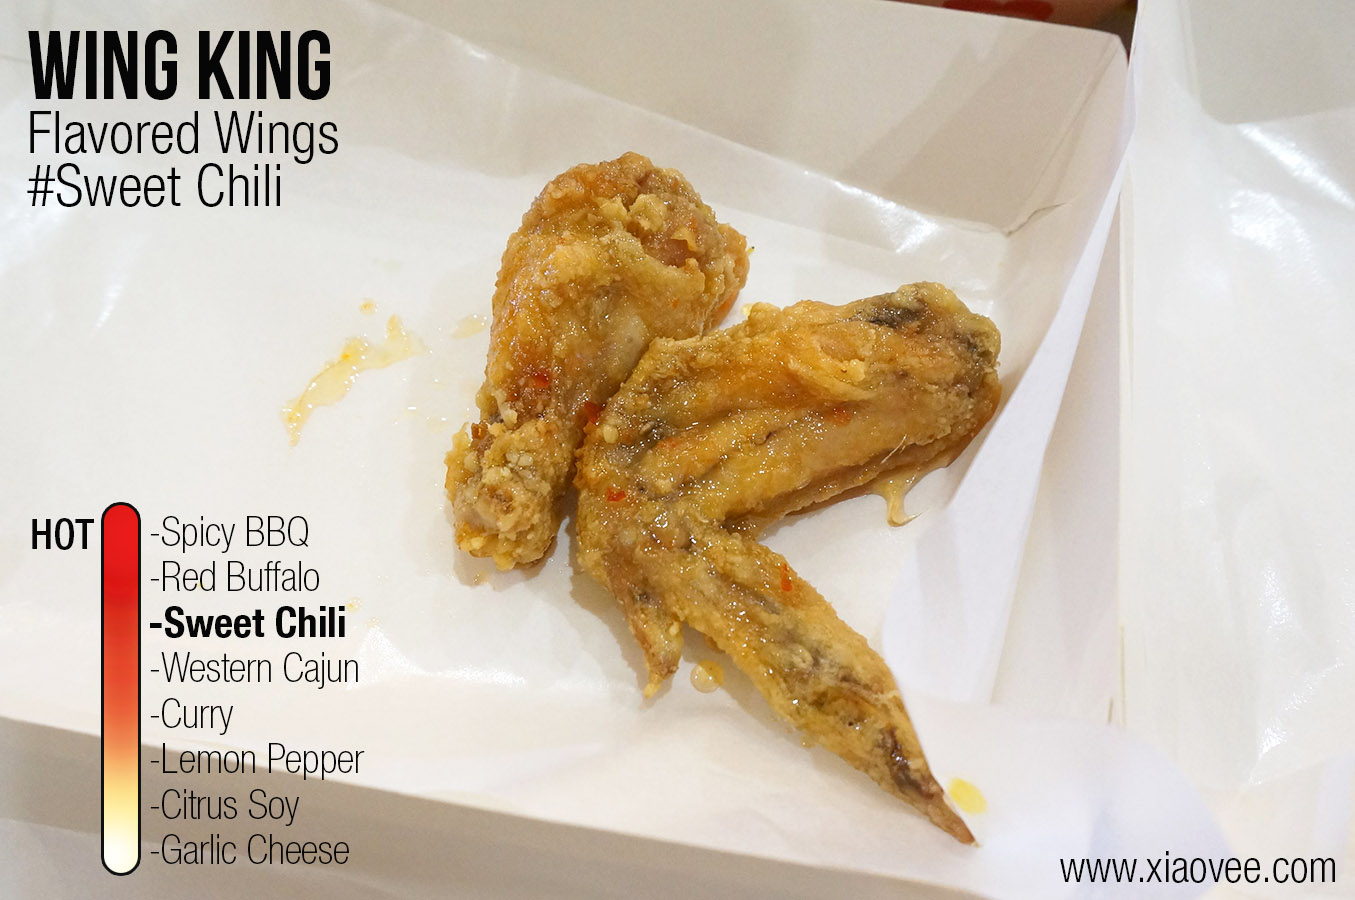 Wing King Surabaya, flavored wing king sweet chili